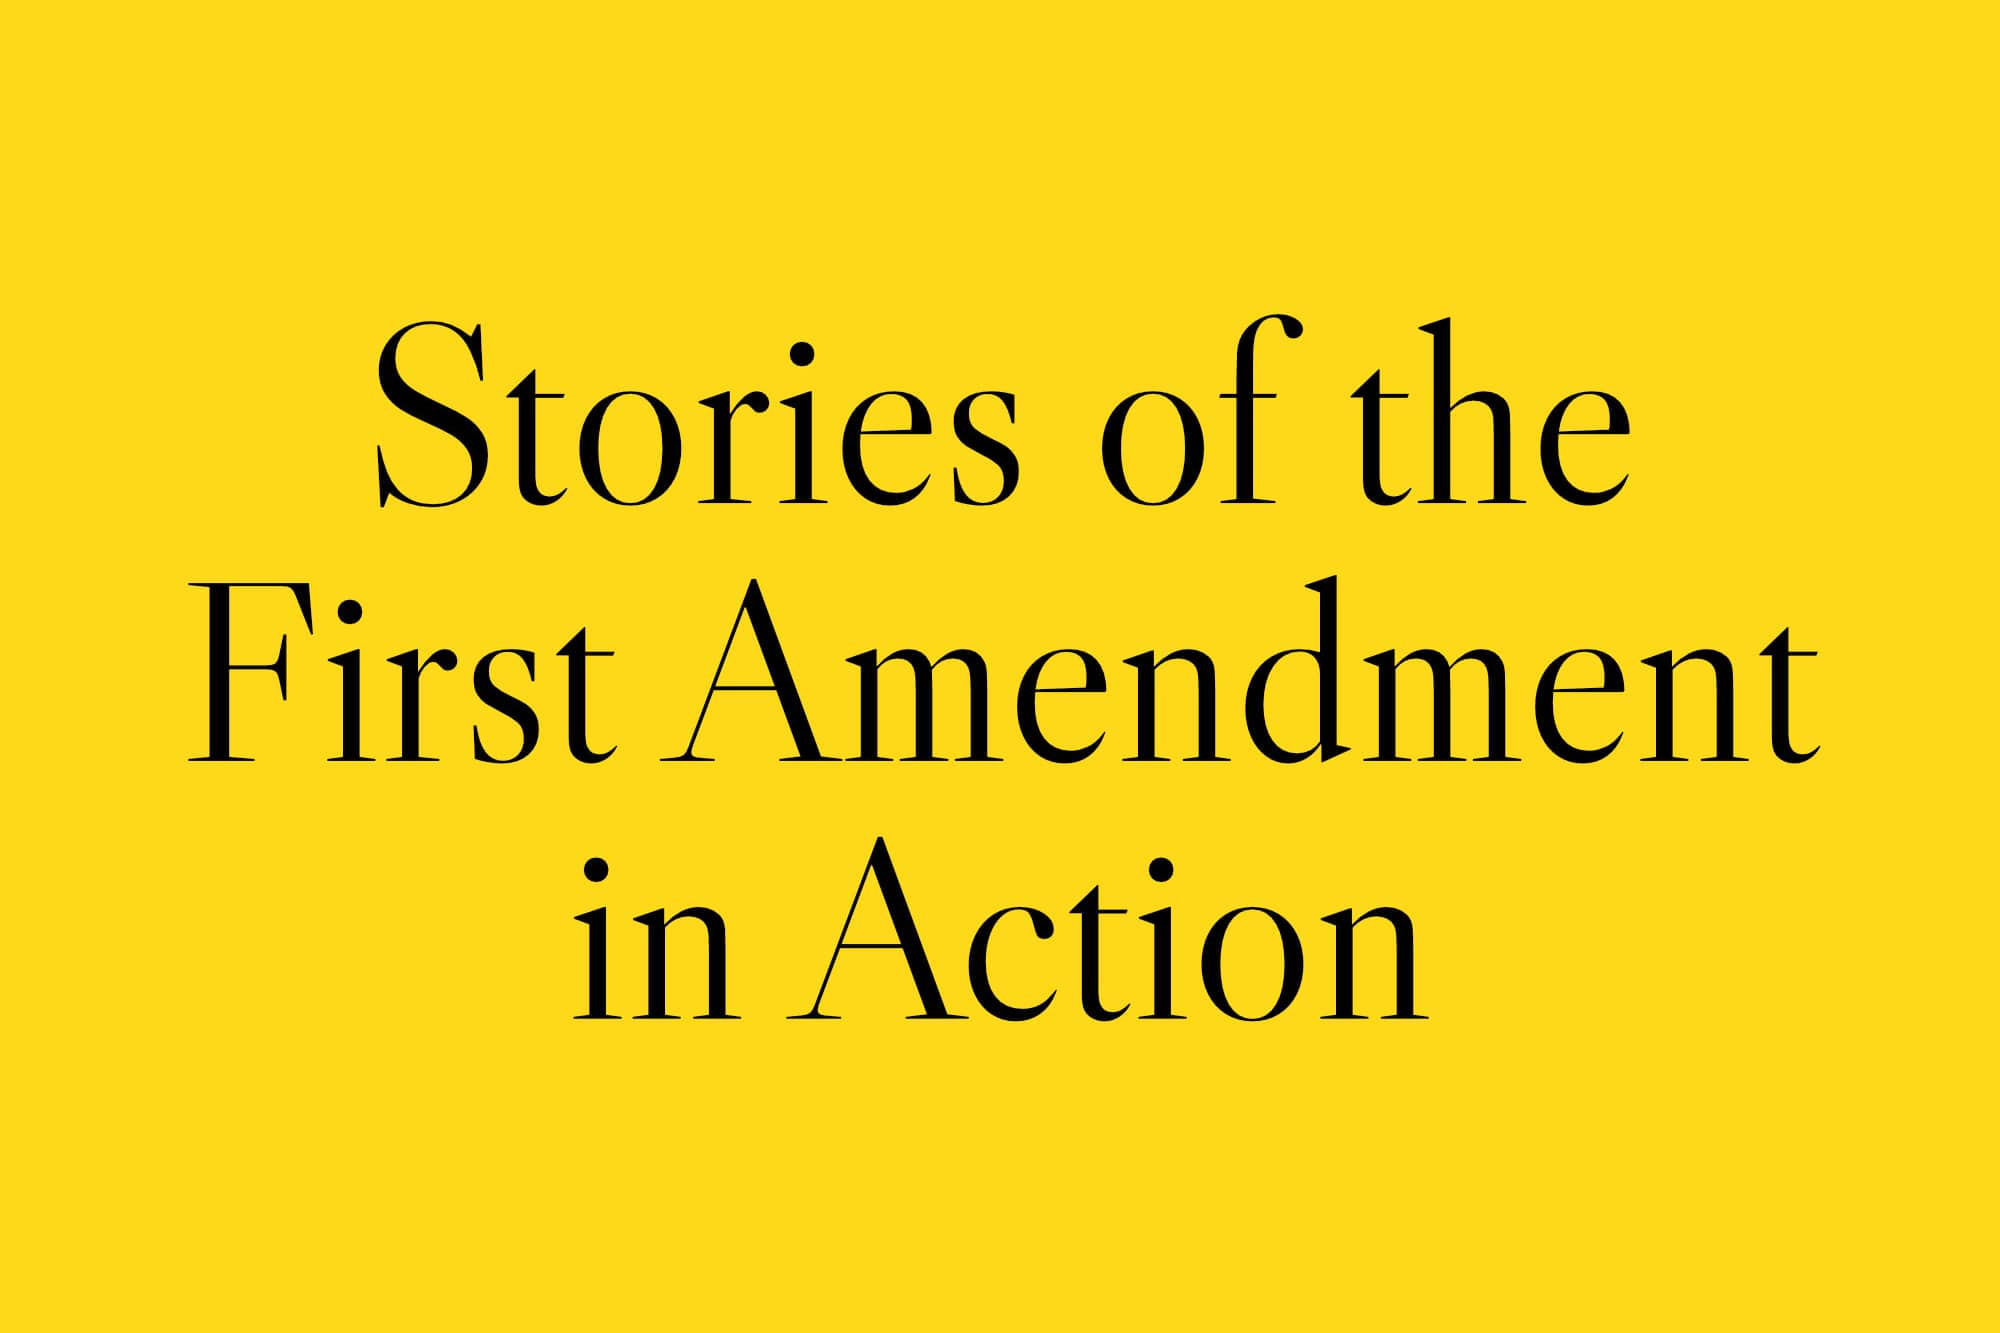 Stories of the First Amendment in Action